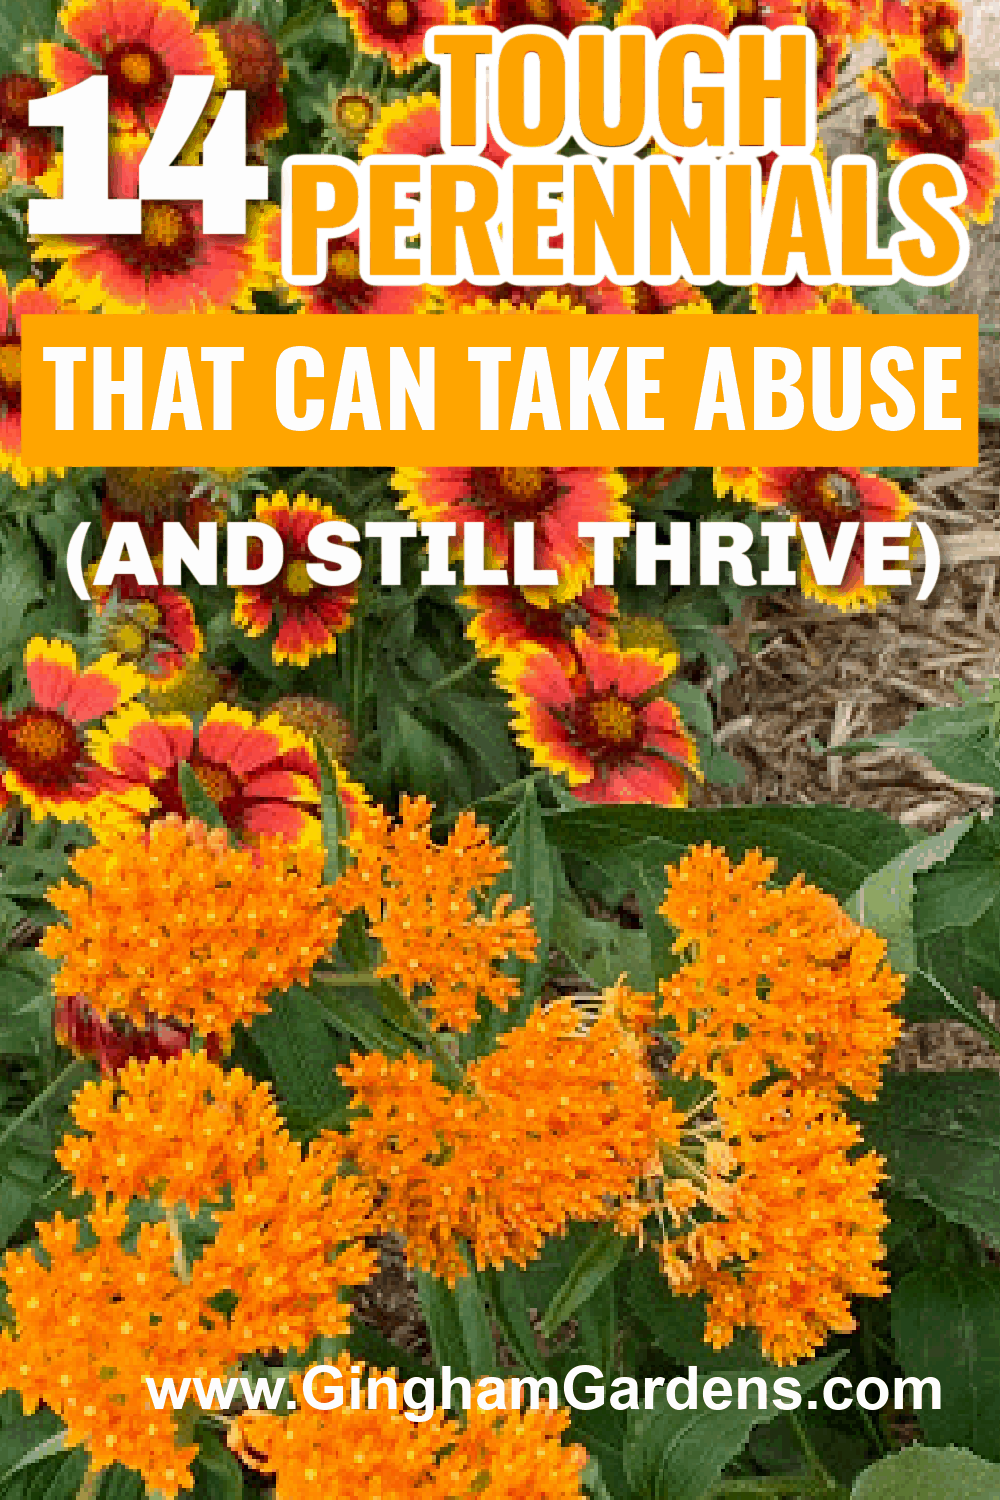 Image of Perennial Flowers with text overlay - 14 Tough Perennials that can take abuse and still thrive